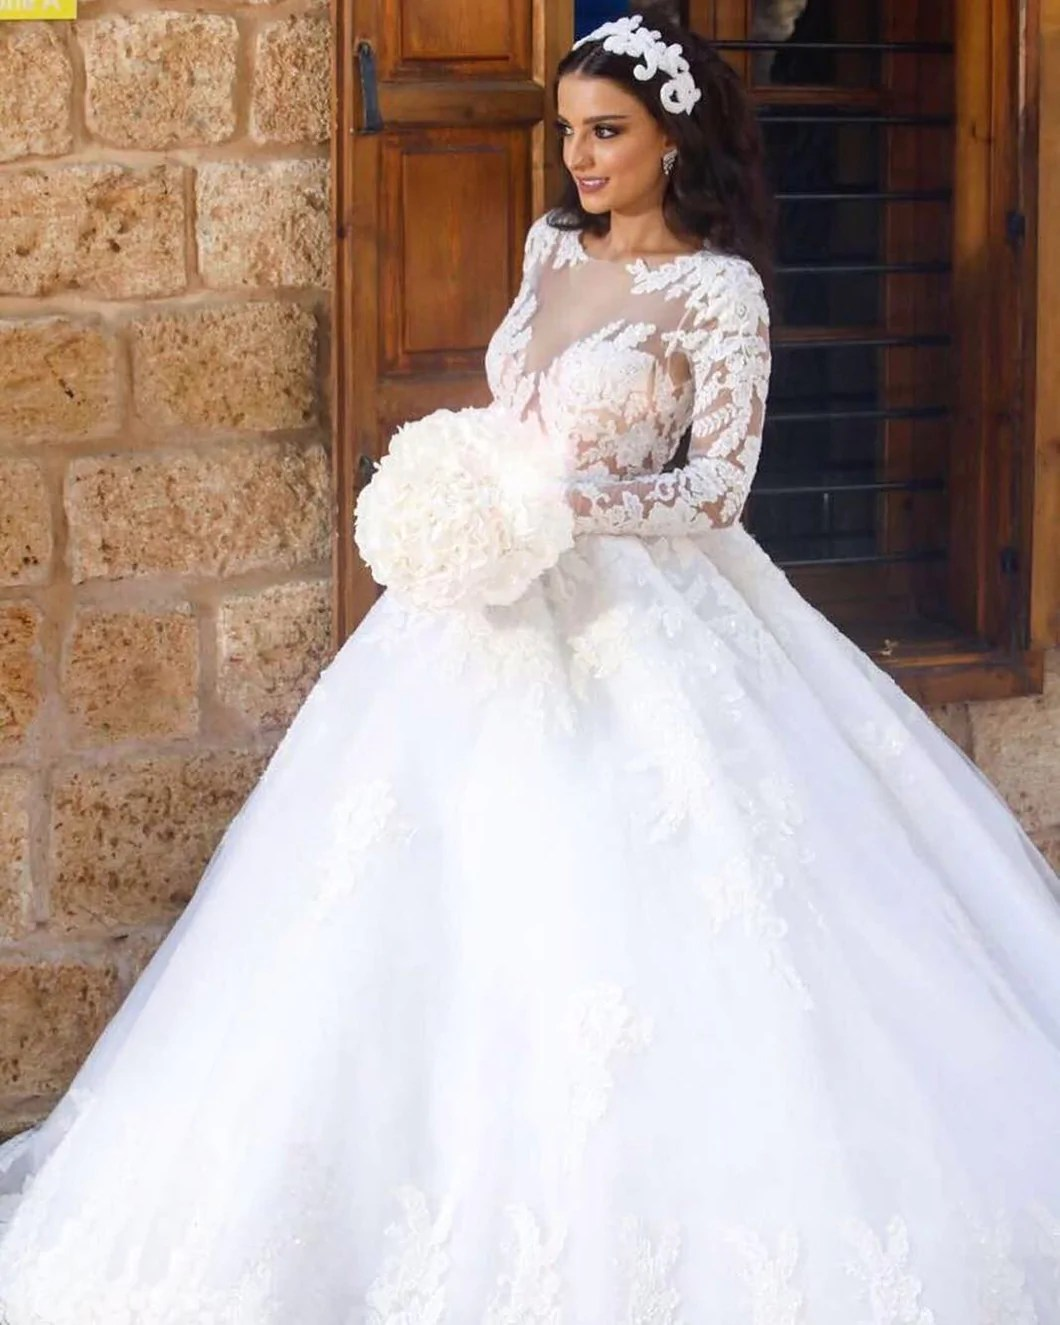 Outstanding Vintage Lace Long Sleeves Ball Gown Wedding Dresses 2018 Vintage Lace Long Sleeves Ball Gown Wedding Dresses 2018 Catsmile Wedding Dresses Lace Sleeves Chiffon Lace Wedding Dresses wedding dress Wedding Dresses Lace